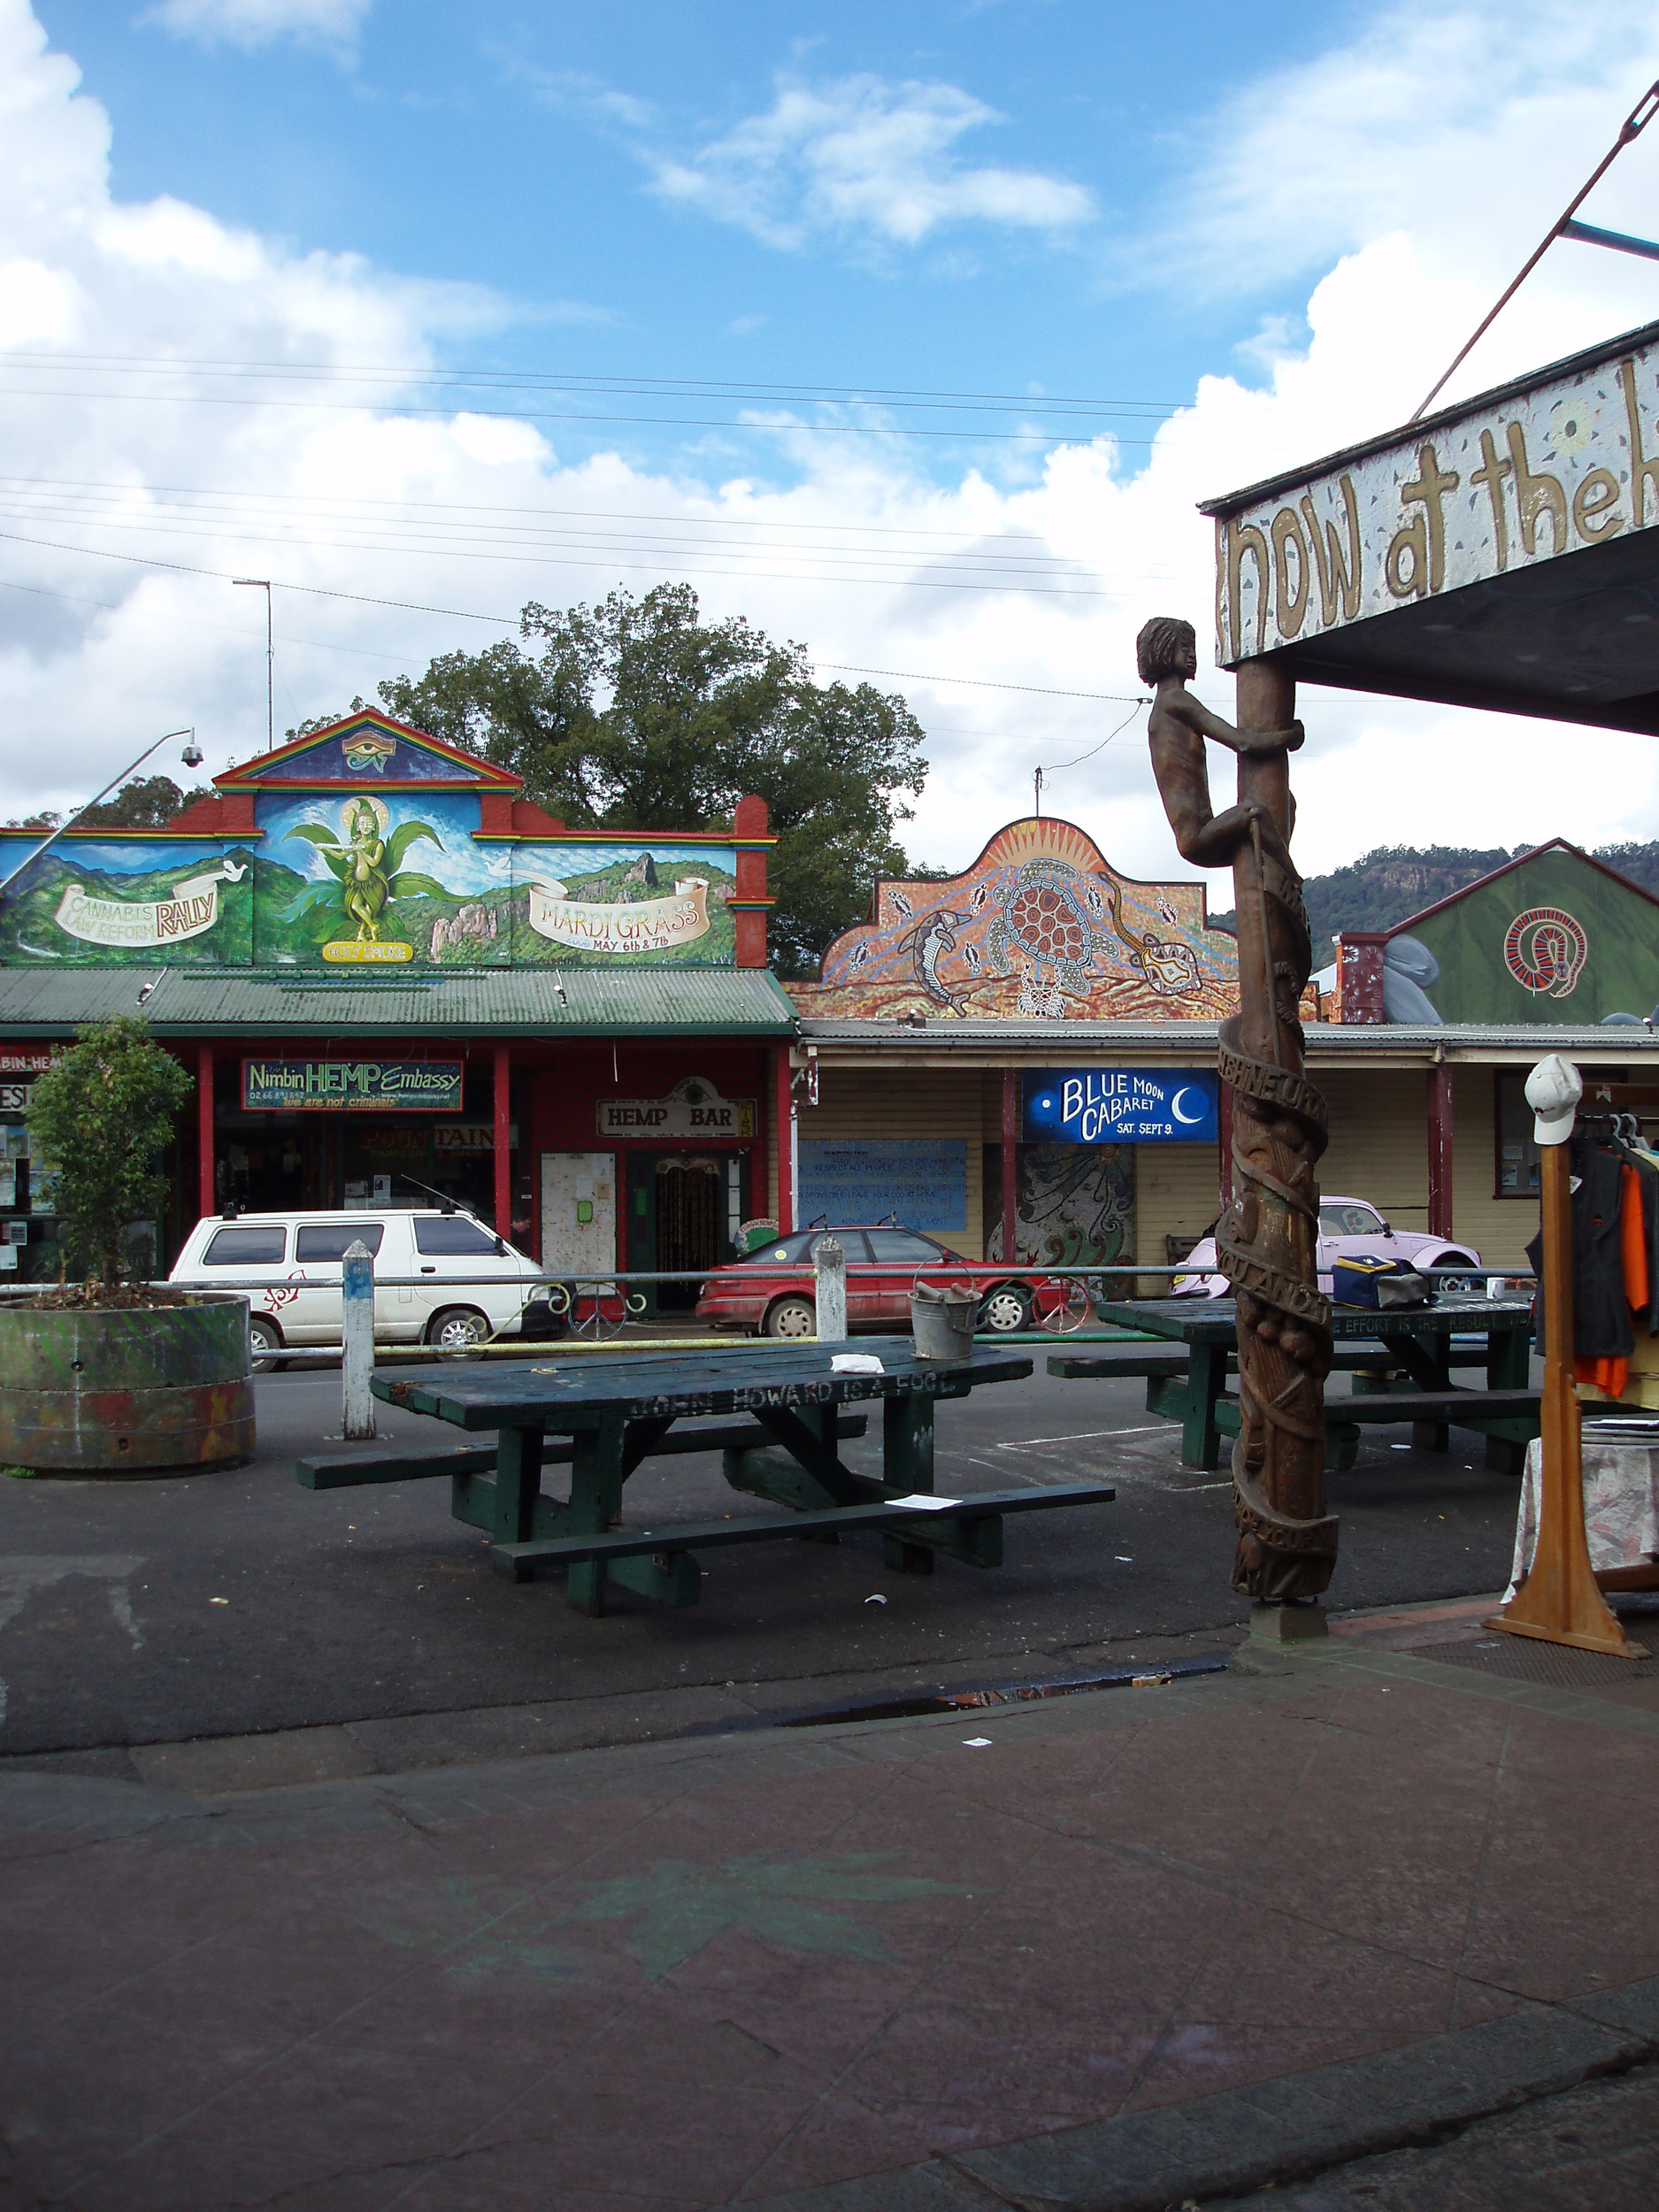 nimbin is a small town in northern new south wales famous for its hippy culture